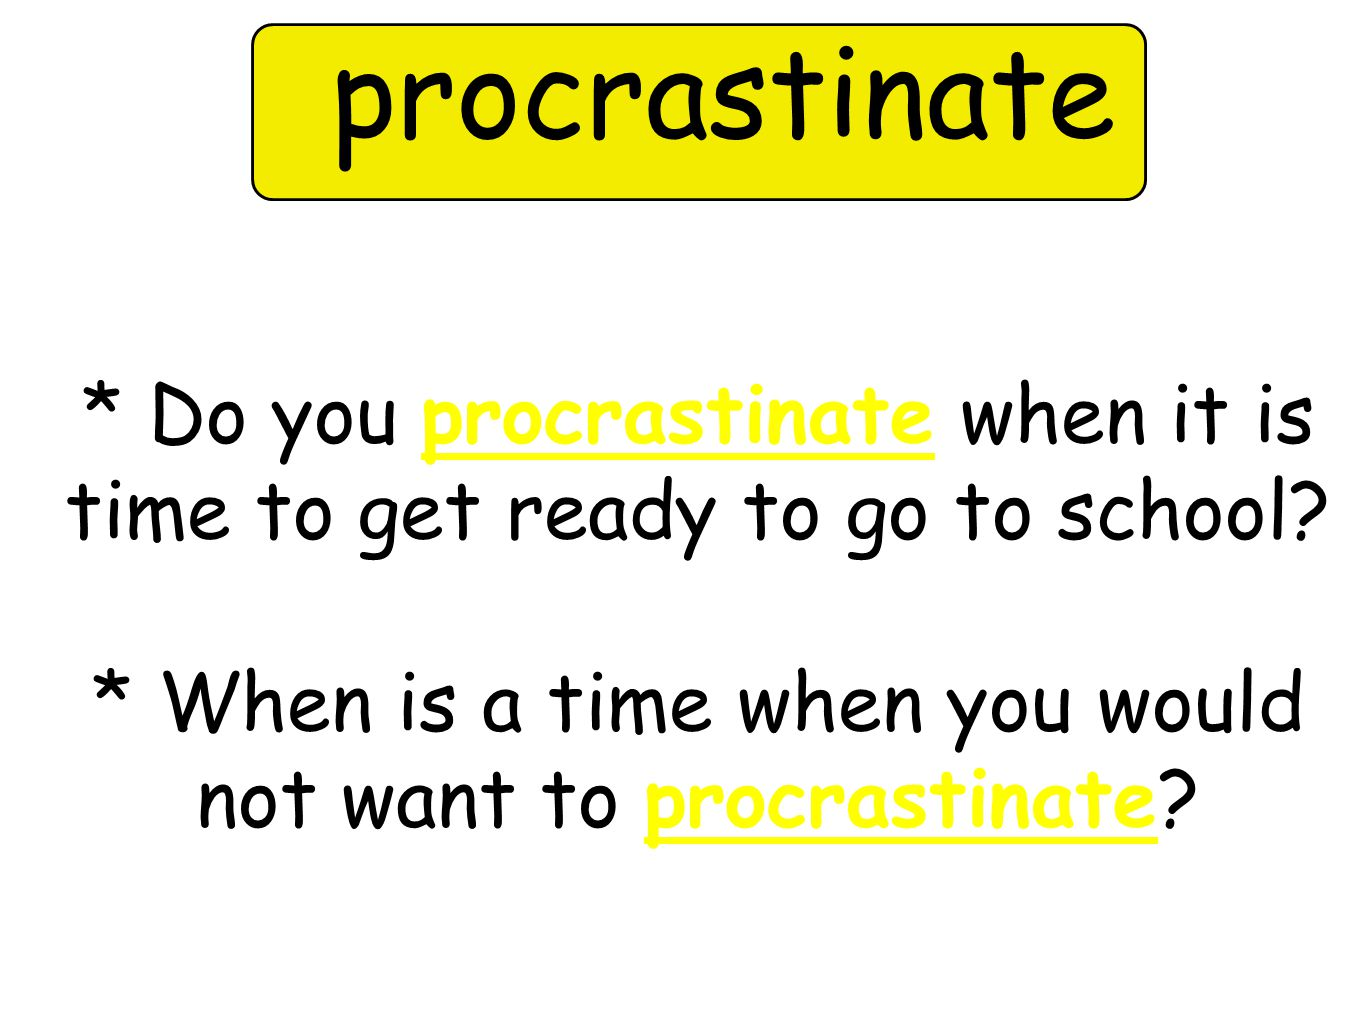 procrastinate * Do you procrastinate when it is time to get ready to go to school.